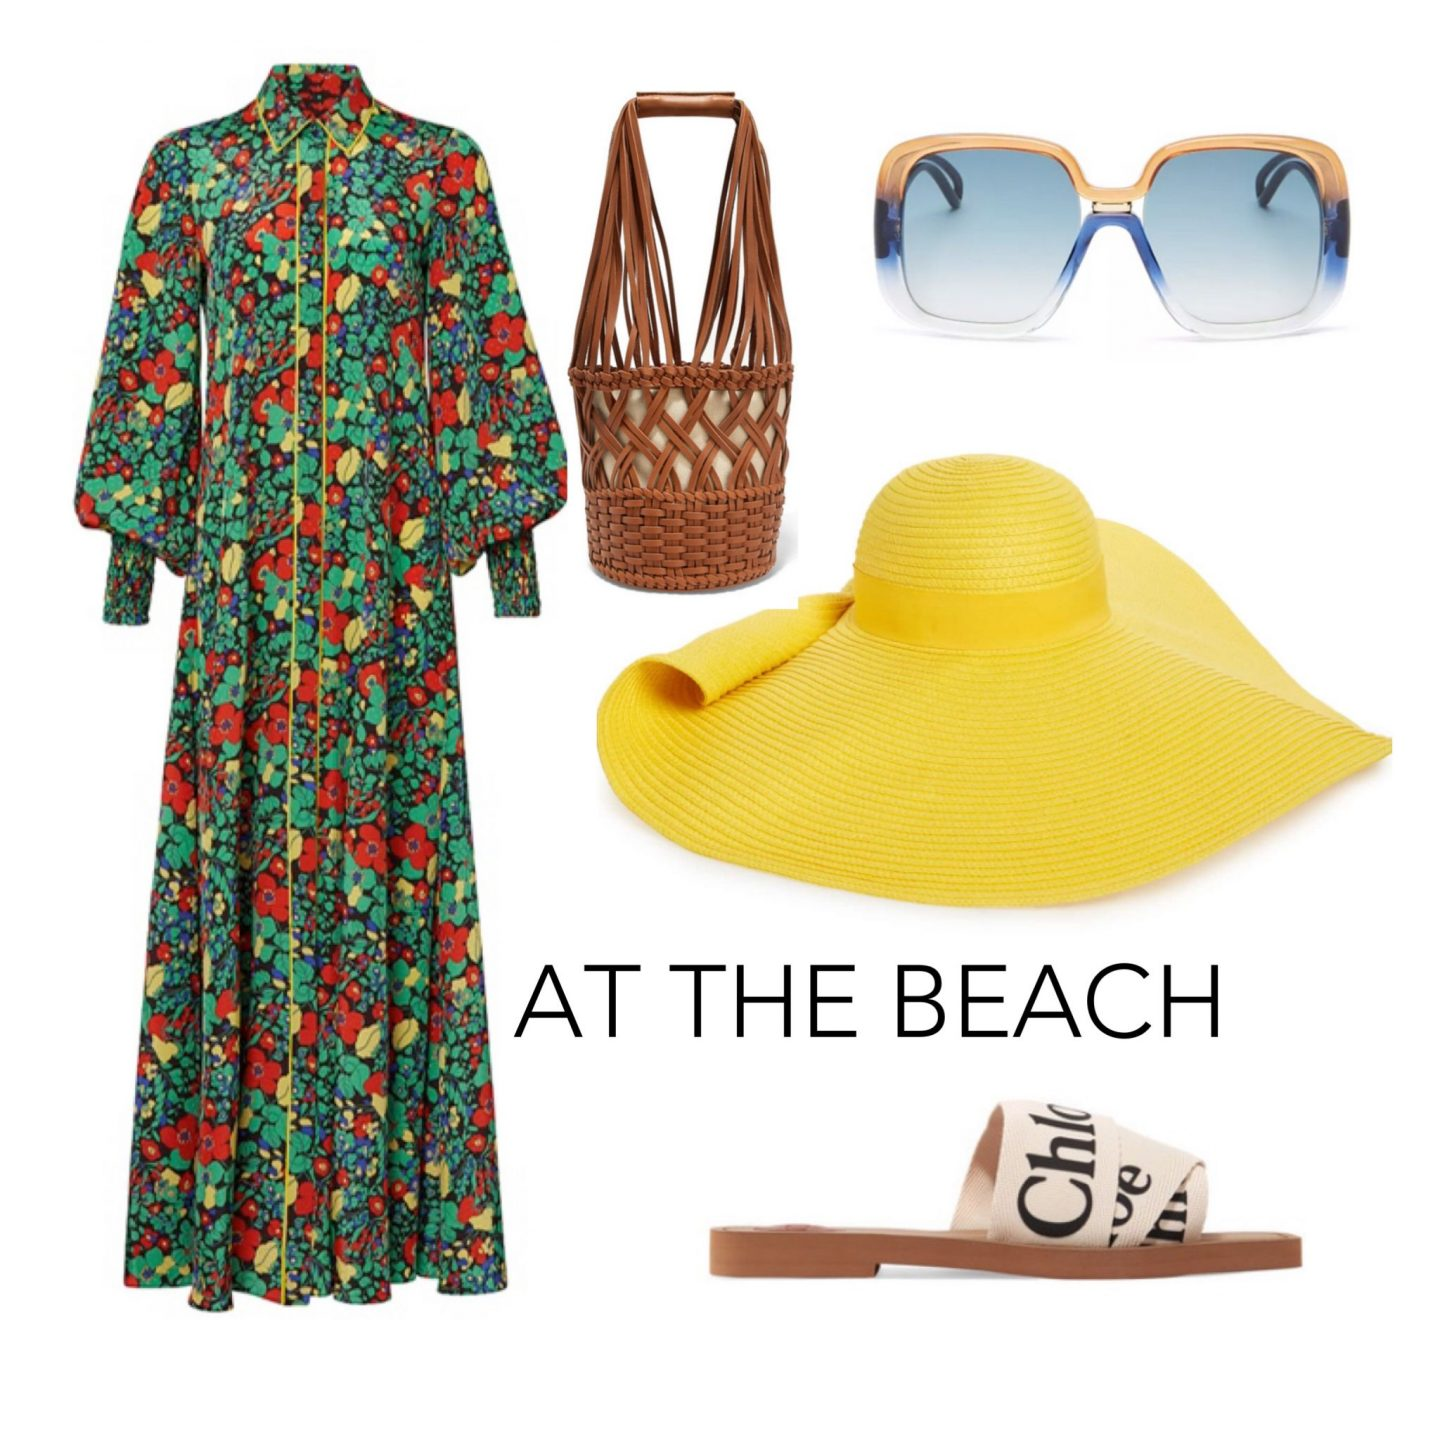 how to style a maxi dress for the beach. chloe sandals, yellow straw hat, blue and yellow oversized sunglasses, brown woven bag, floral maxi dress